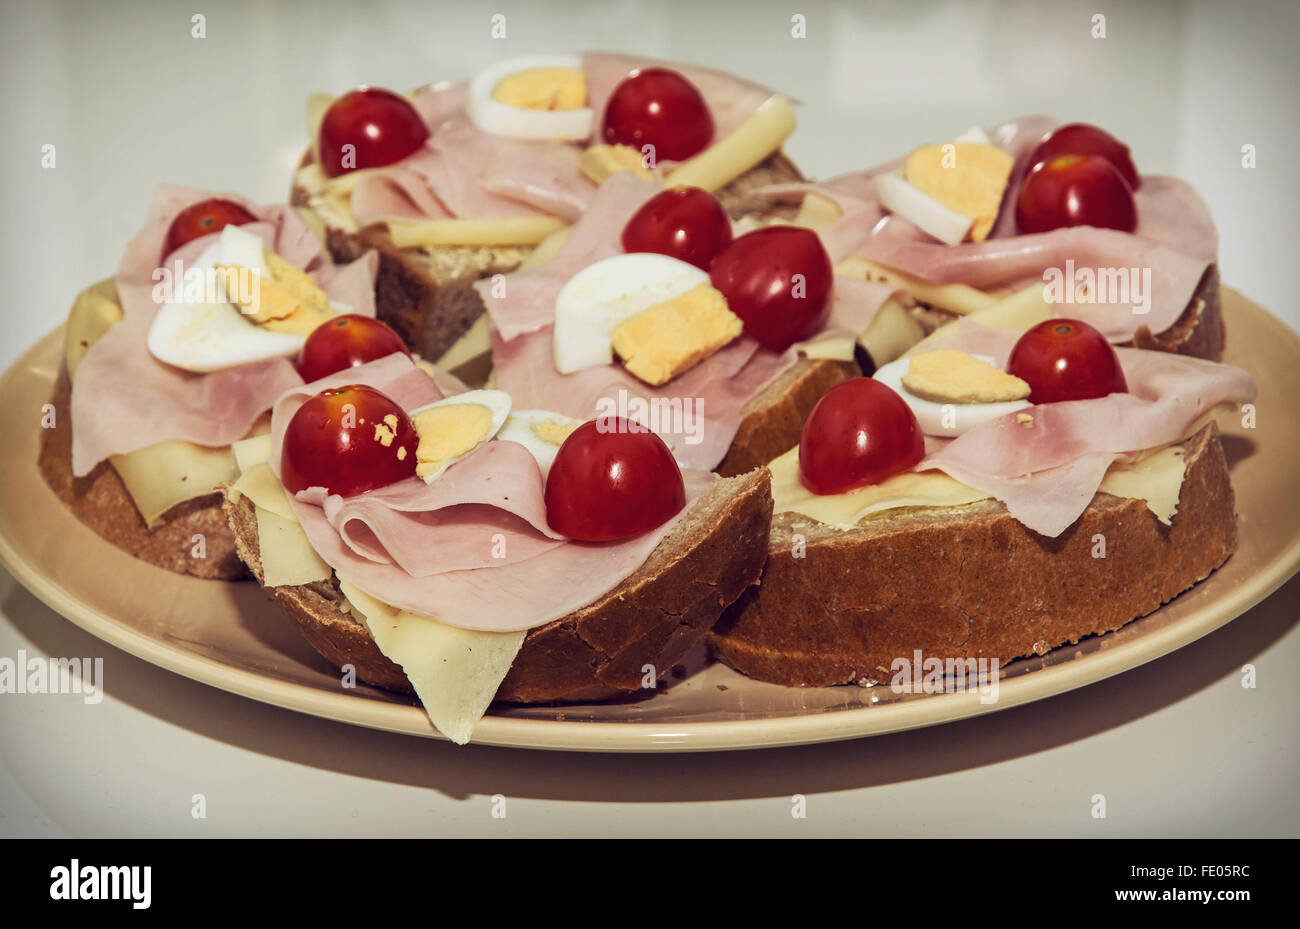 Tasty sandwiches with egg, cheese, ham and cherry tomatoes on the plate. Food theme. Stock Photo